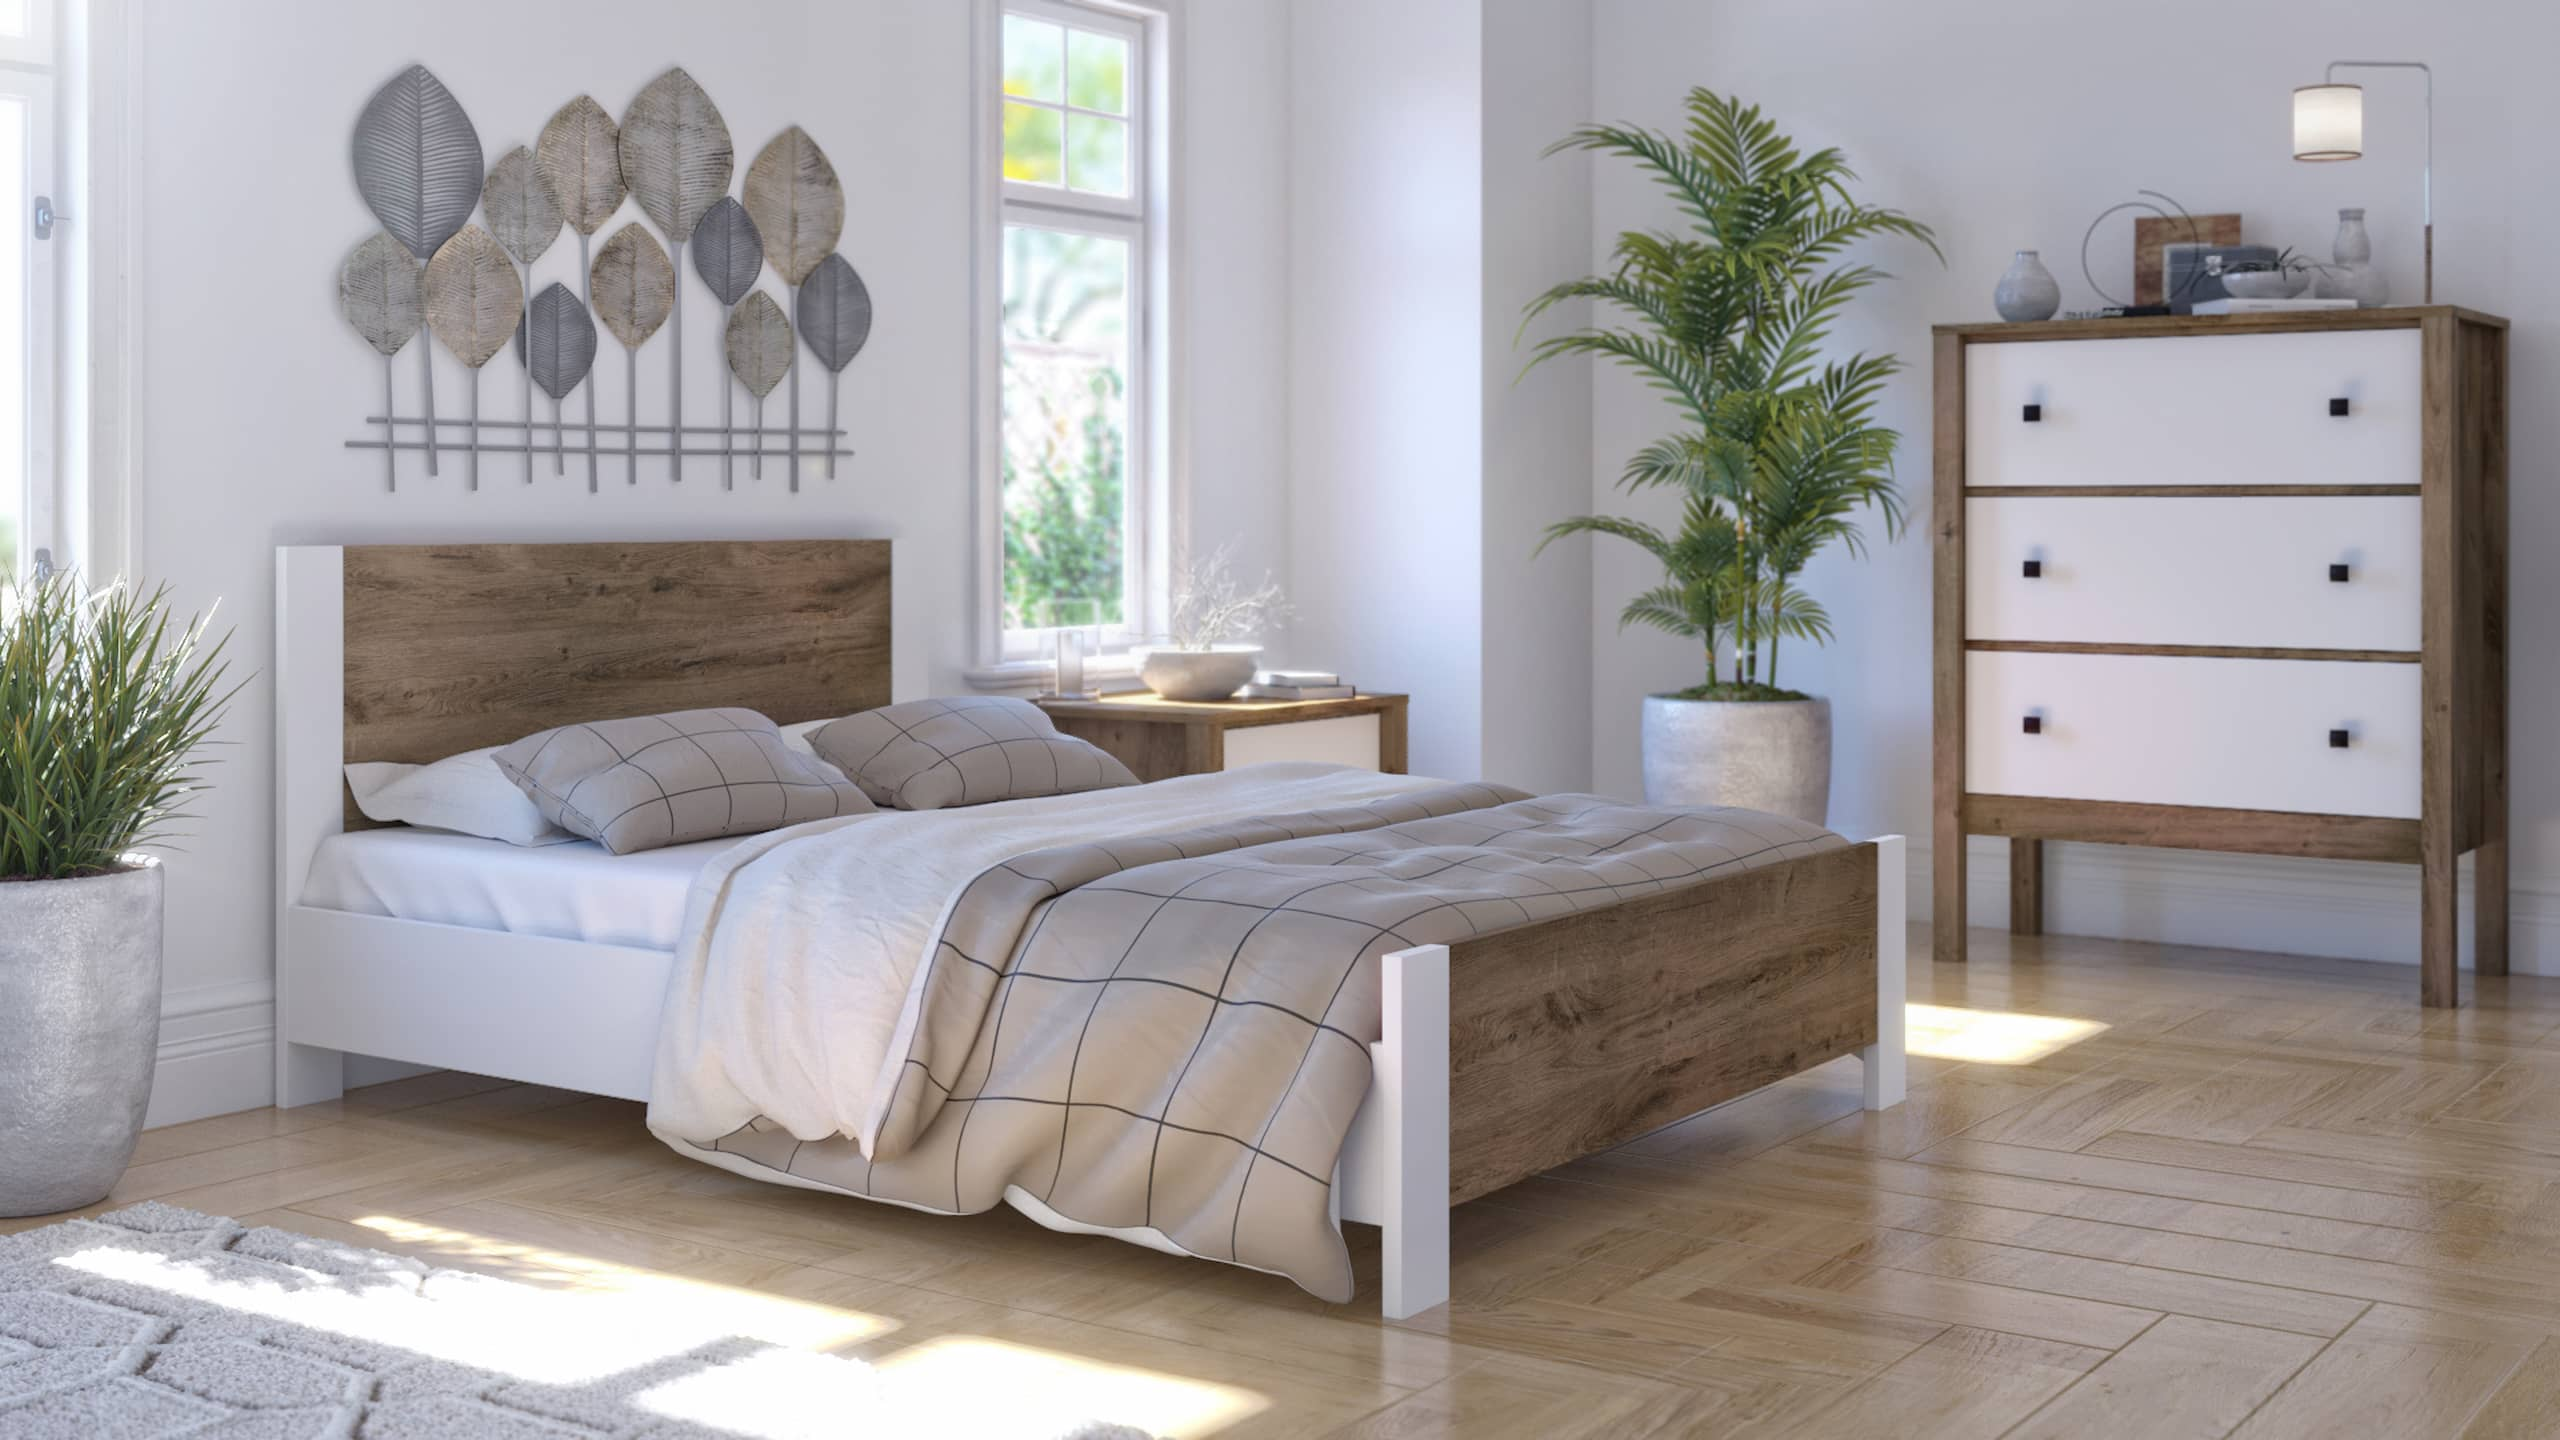 bedroom with neutral colors